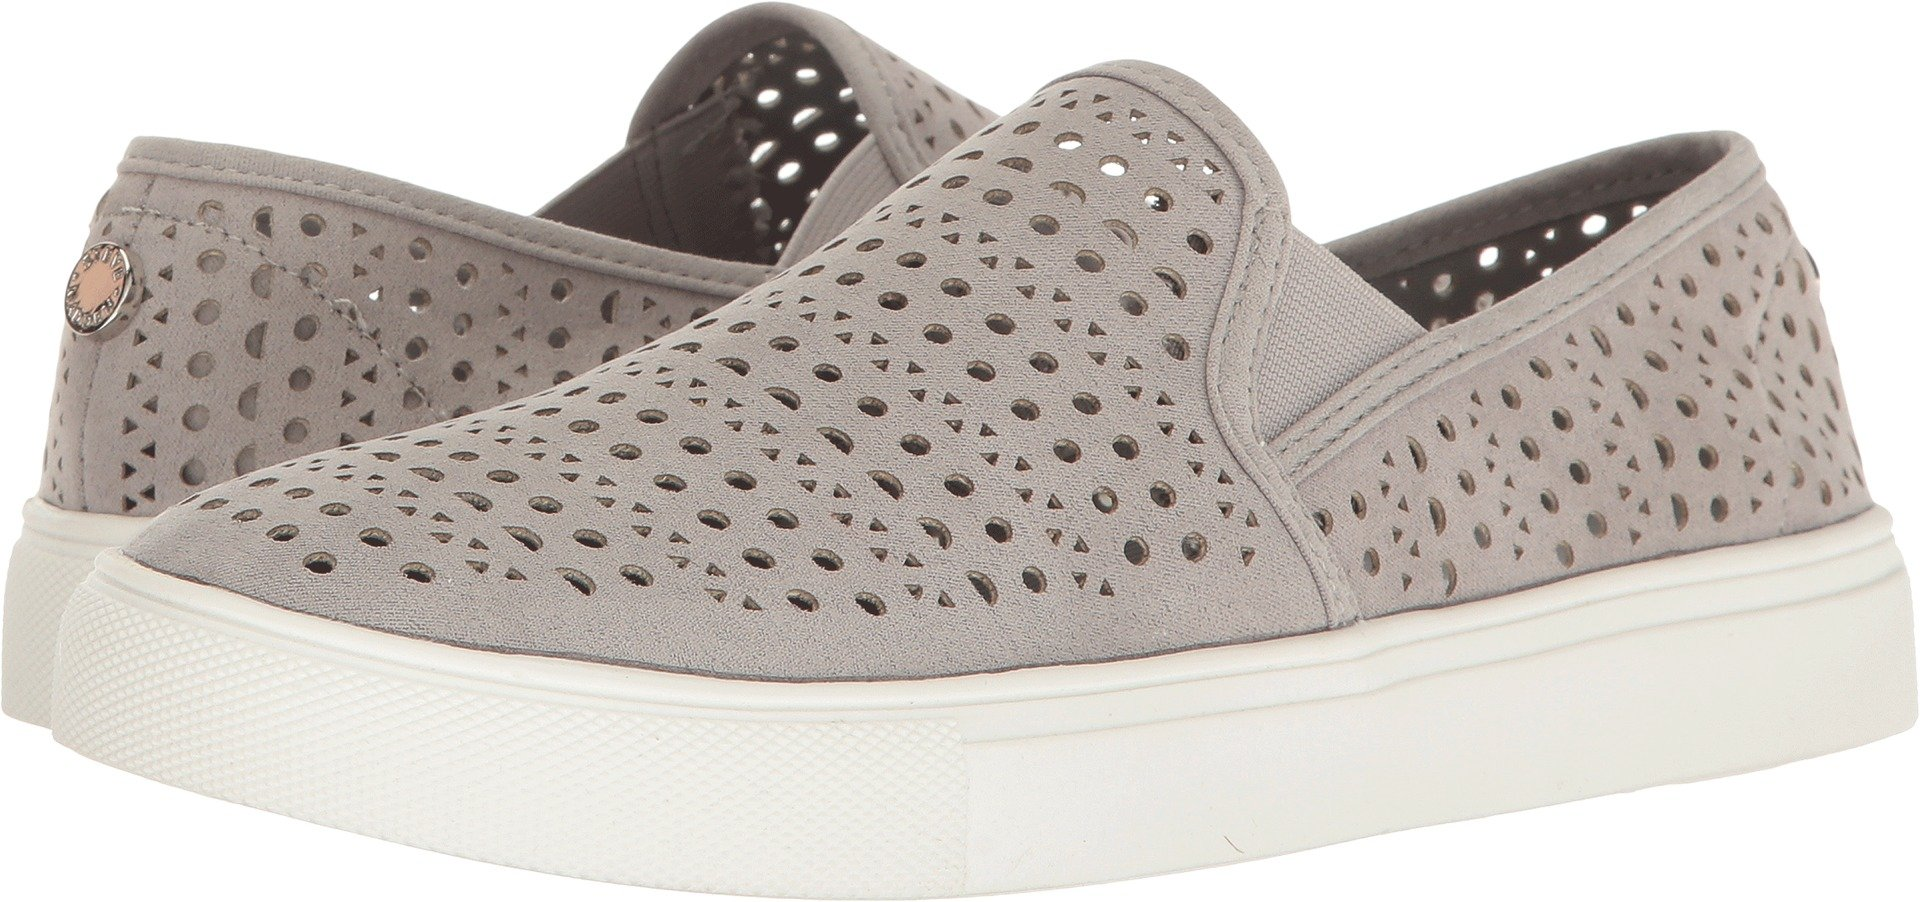 Steve Madden Women's Odonna Light Grey Loafer